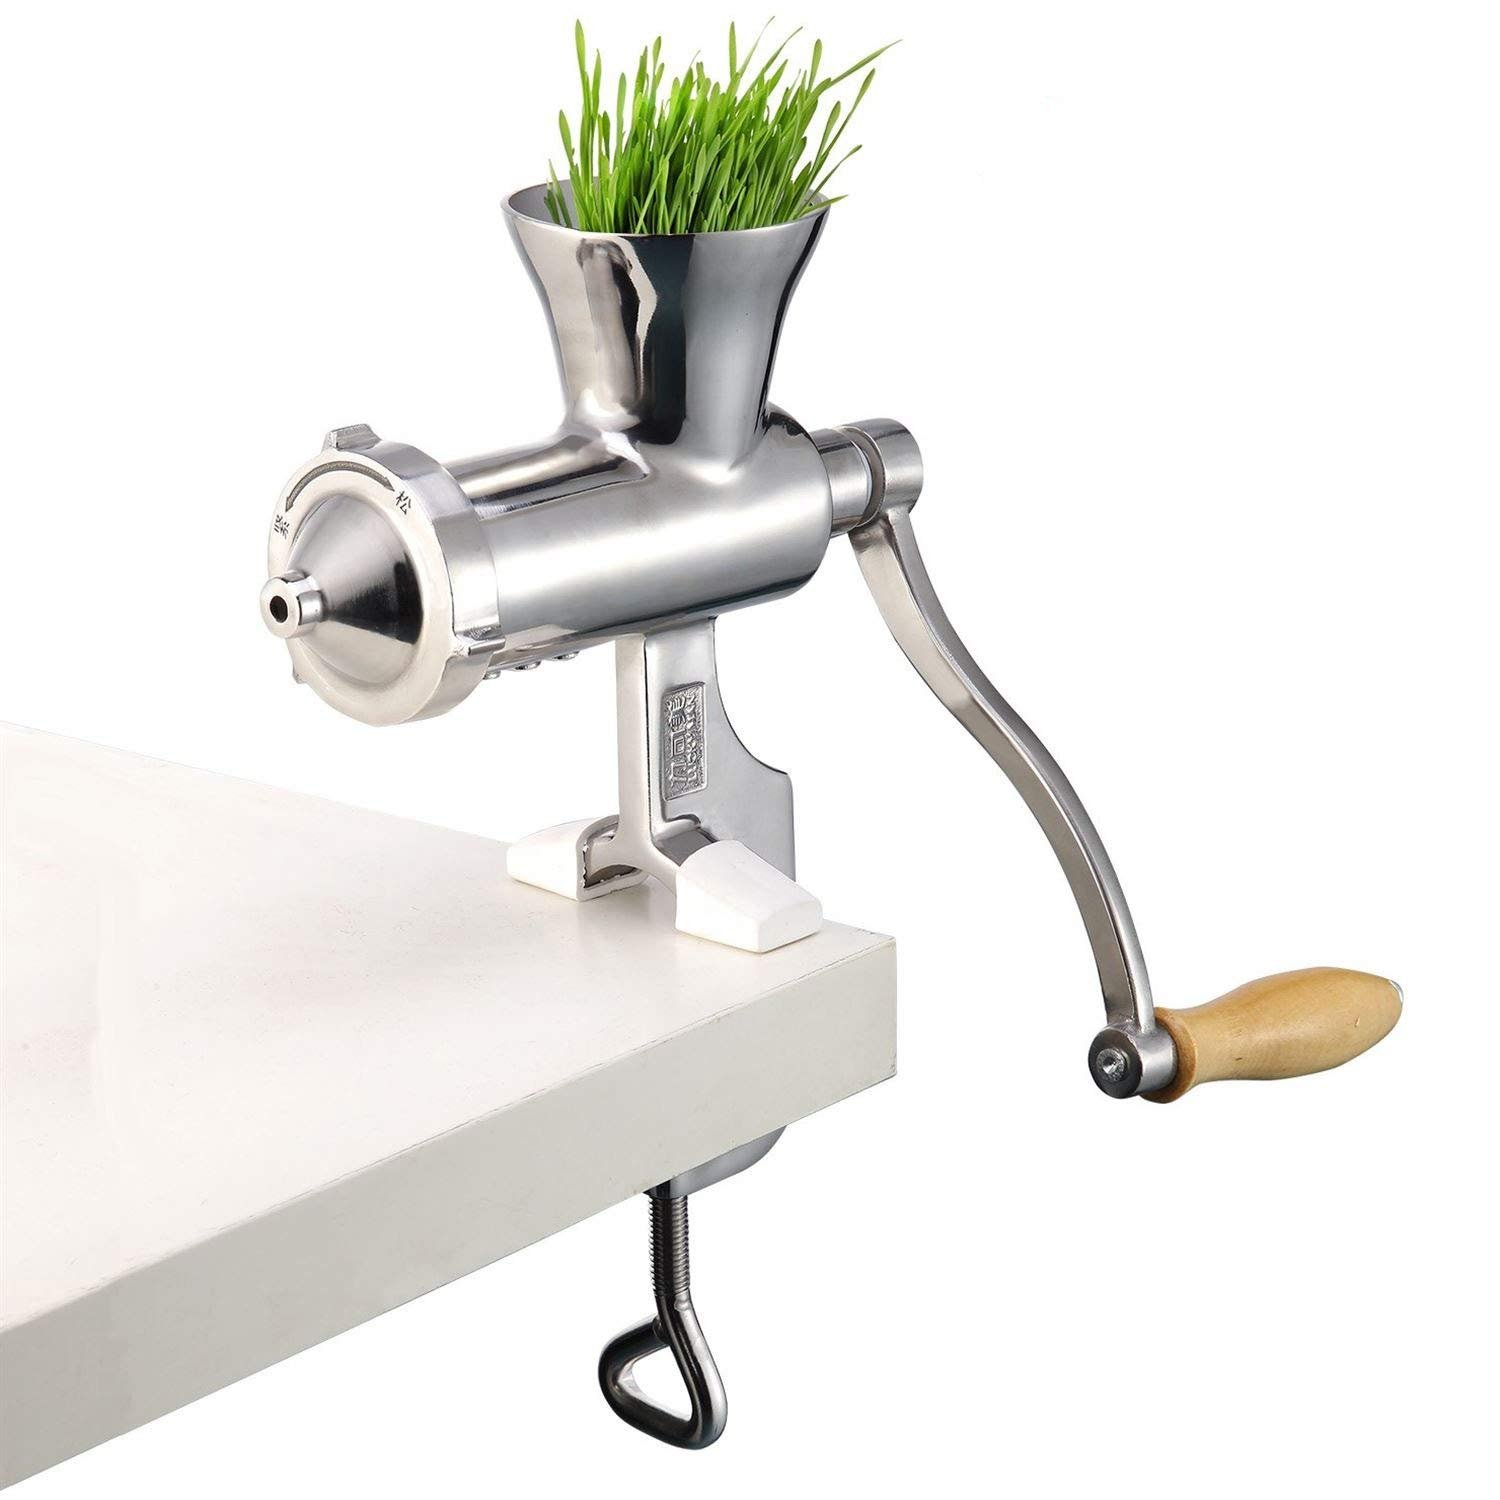 TongBF Manual Stainless Steel Wheatgrass Juicer Manual Auger Slow Squeezer Fruit Wheat Grass Vegetable Fruit Orange Juice Press Extractor